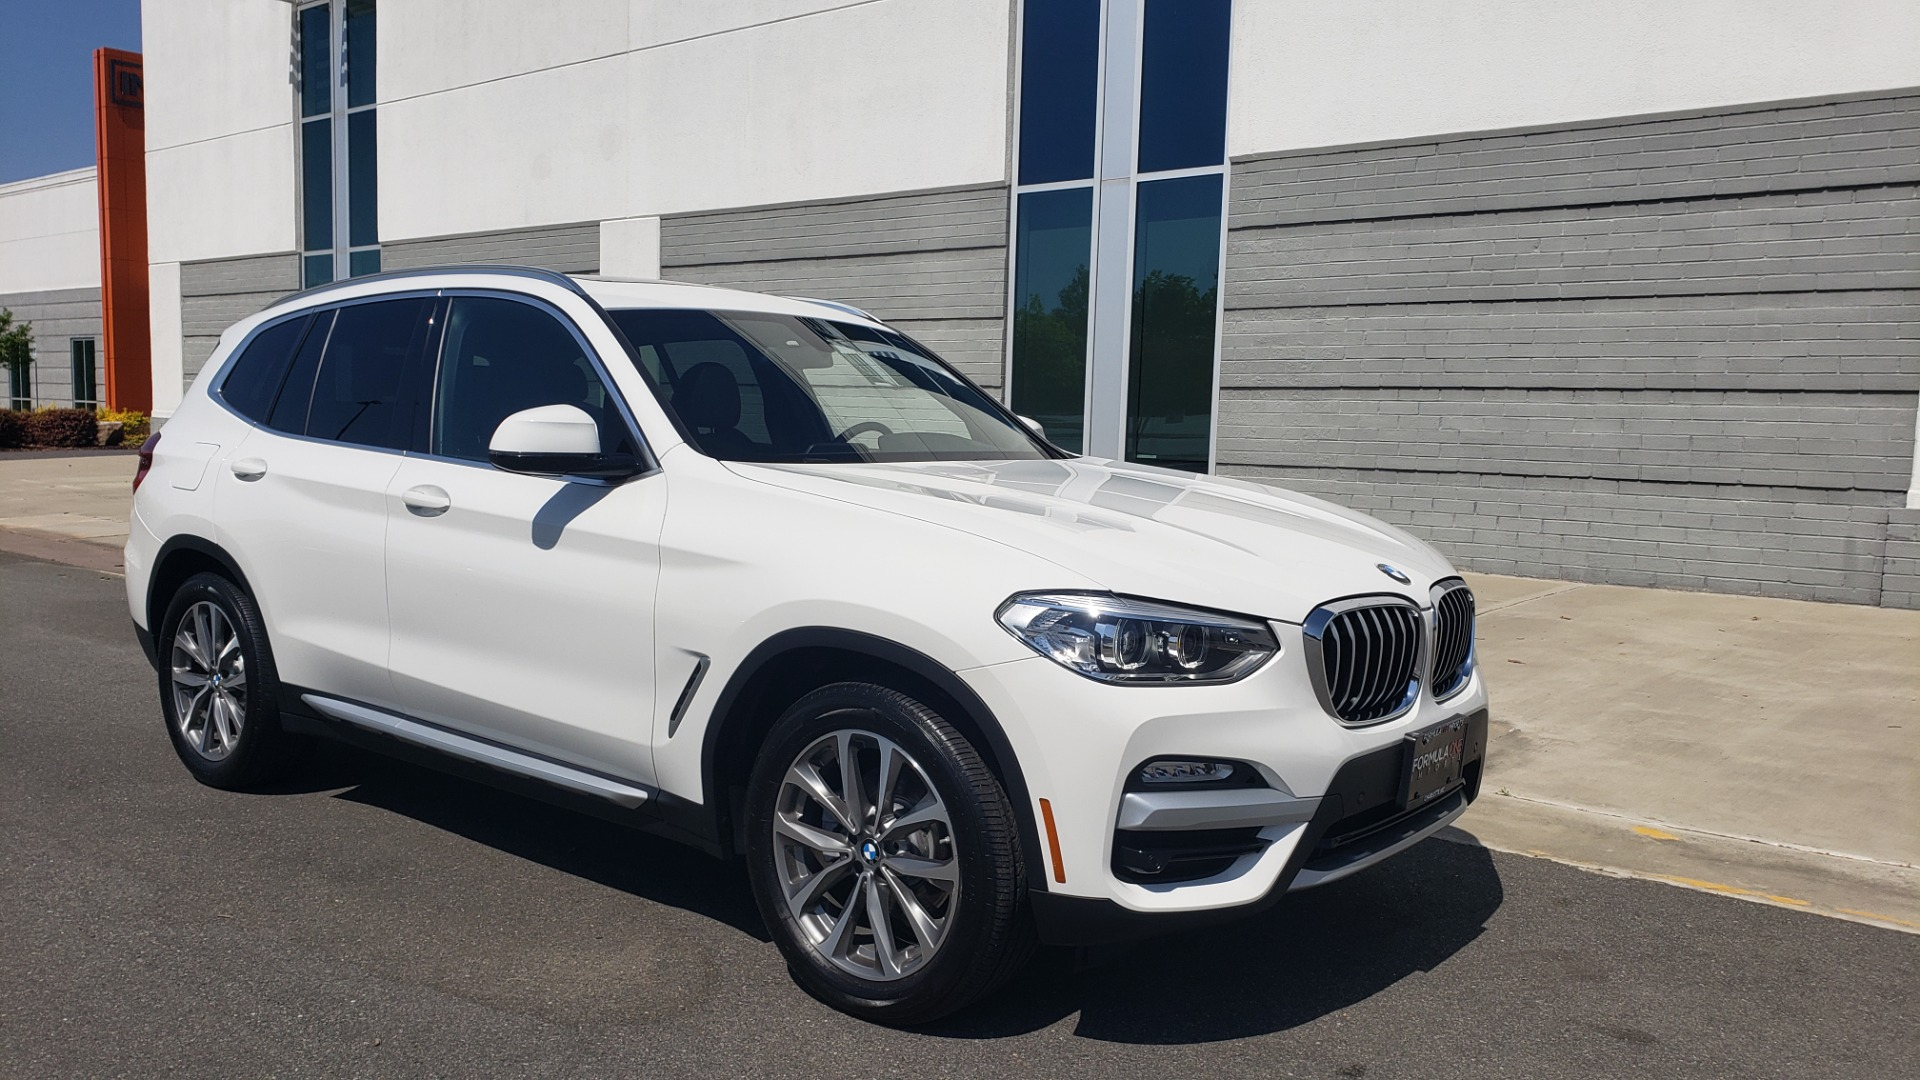 Used 2018 BMW X3 XDRIVE30I / CONV PKG / PANO-ROOF / HTD STS / REARVIEW for sale $33,995 at Formula Imports in Charlotte NC 28227 6